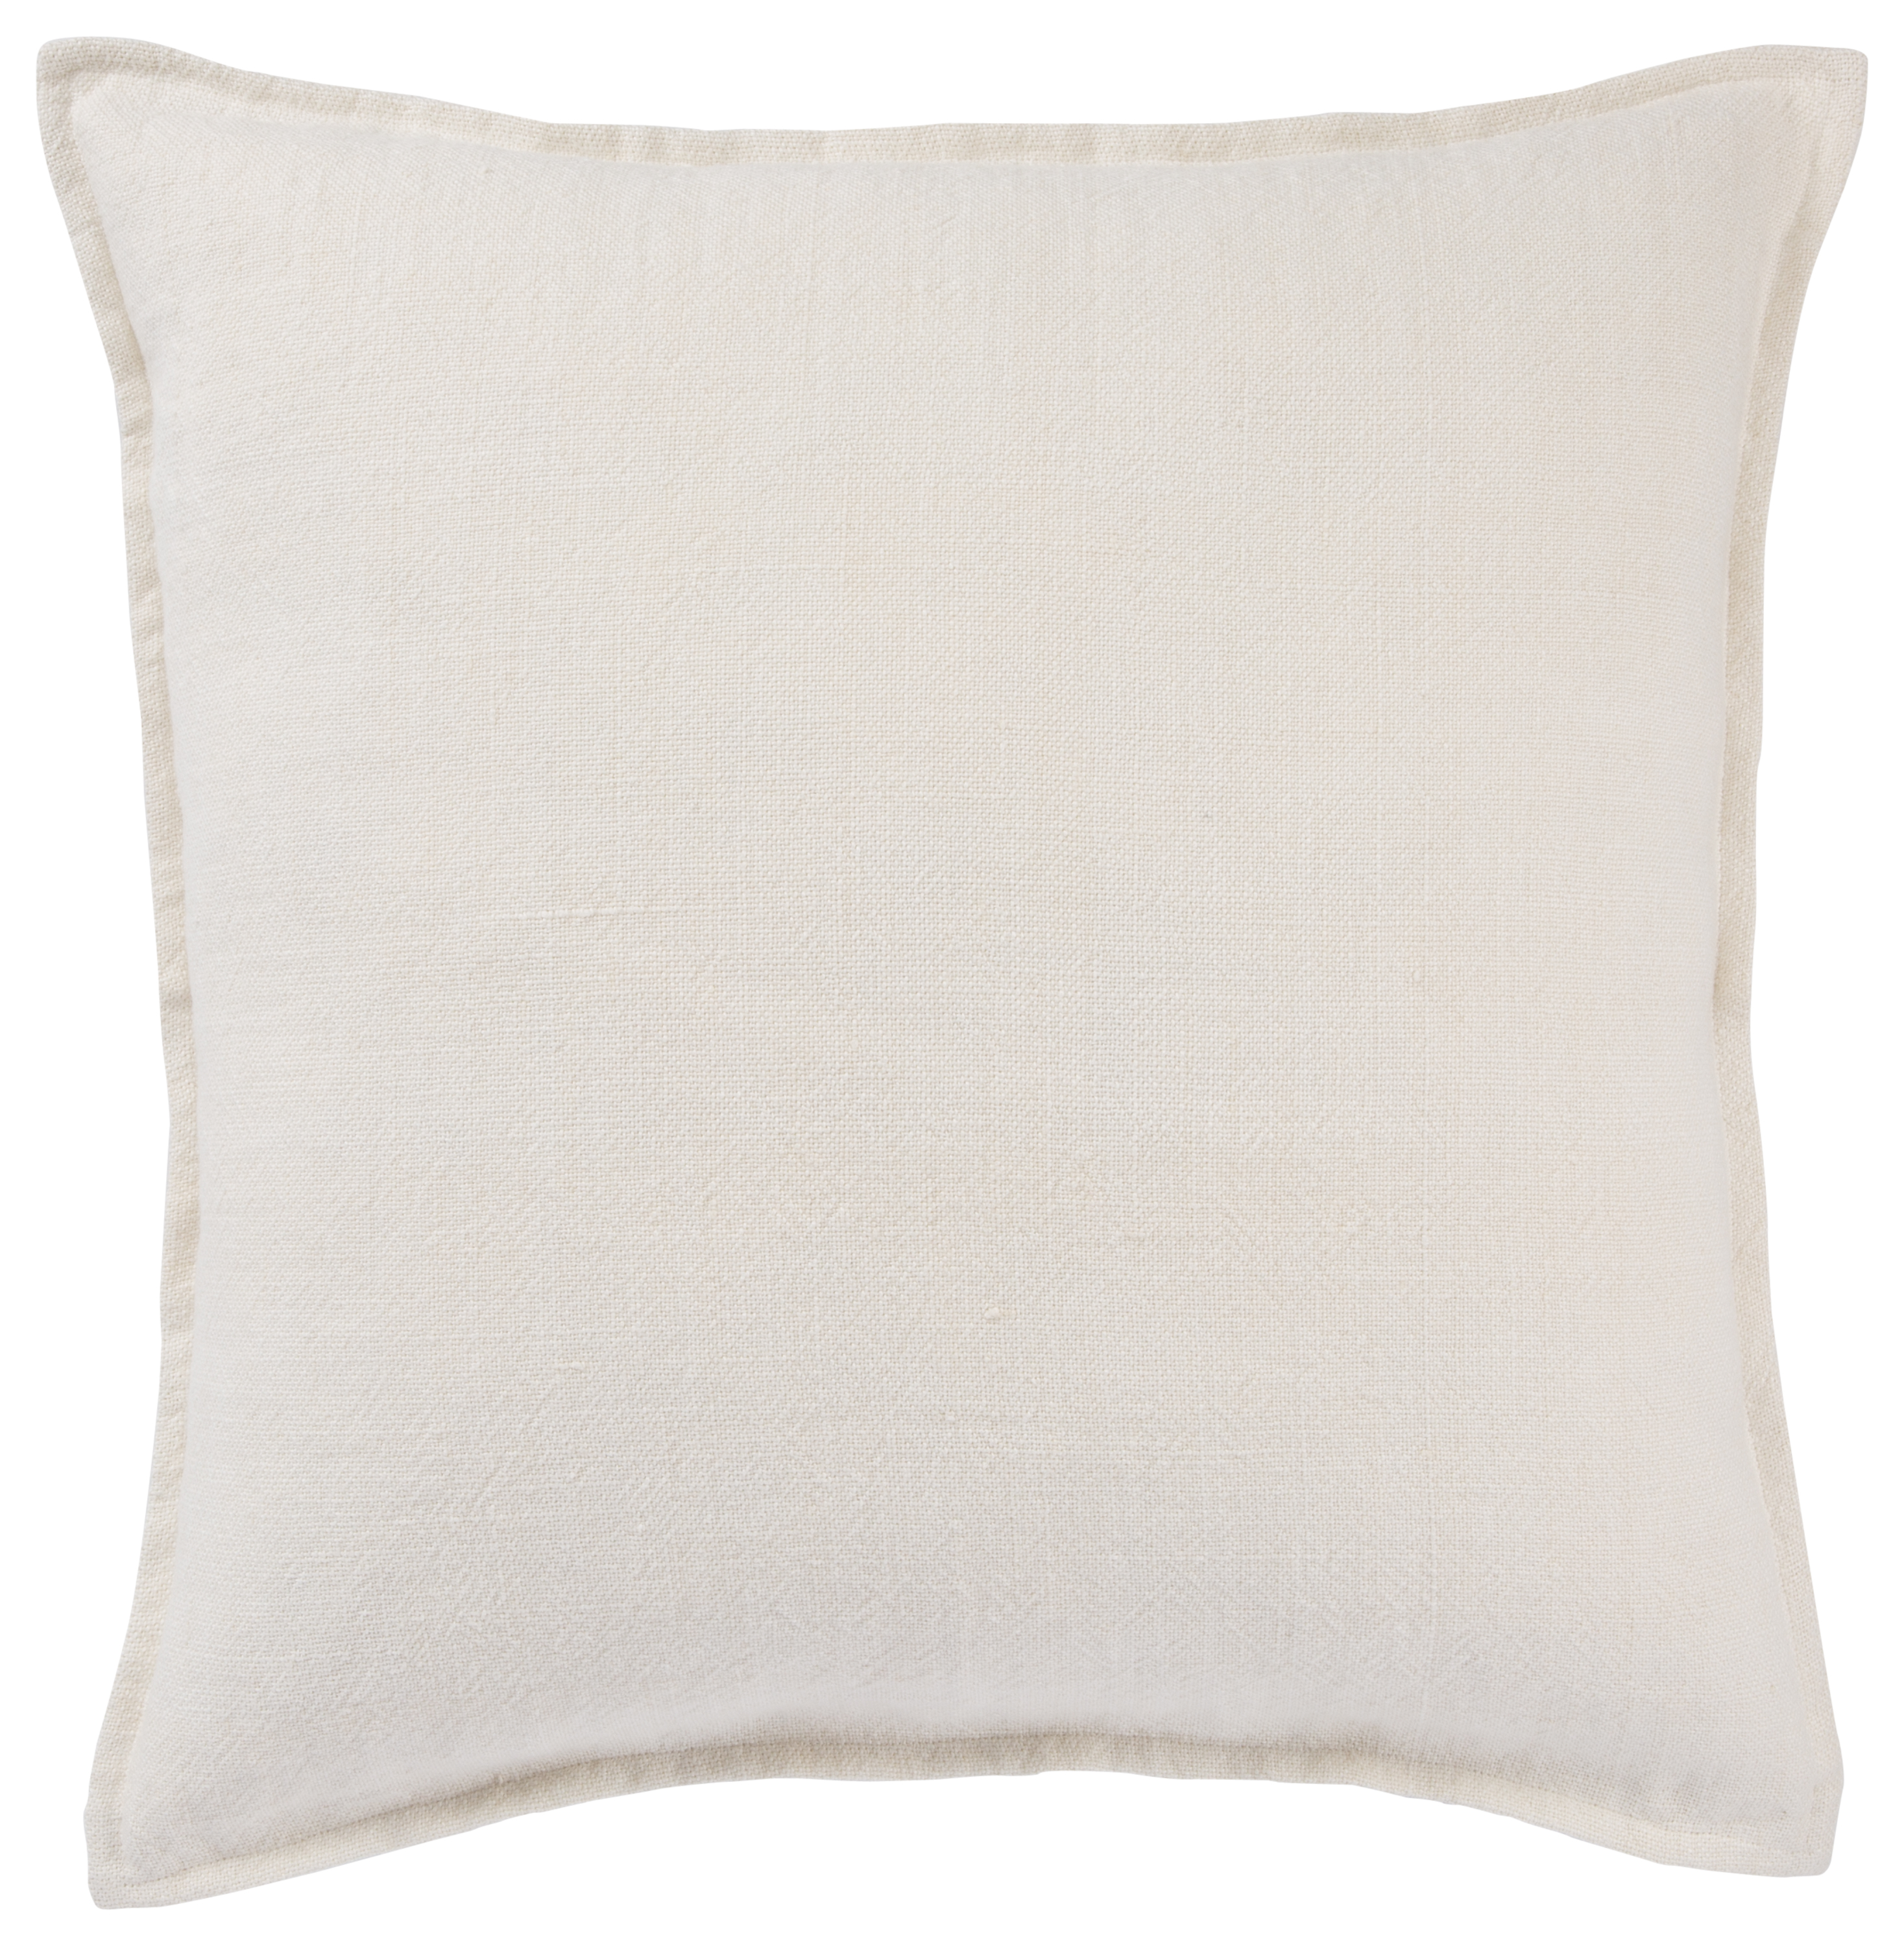 Jaipur Living Blanche Solid Ivory Poly Throw Pillow